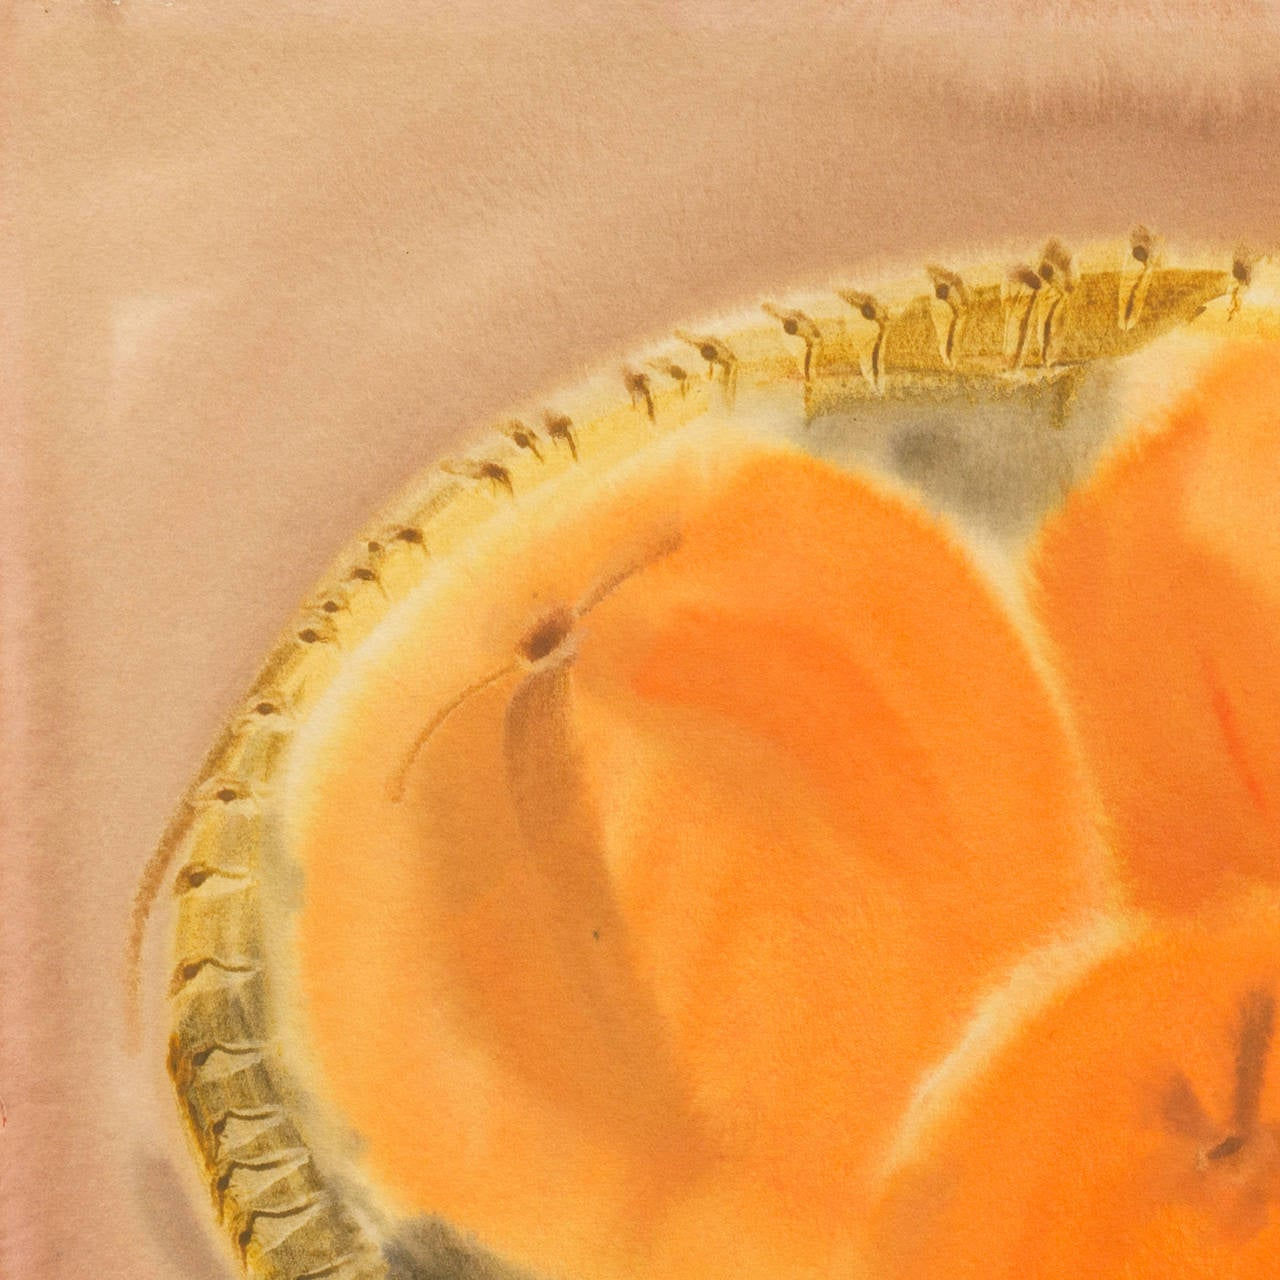 Still Life of Peaches in a Woven Basket by a California Woman Artist - Post-Impressionist Painting by Leah Schwartz